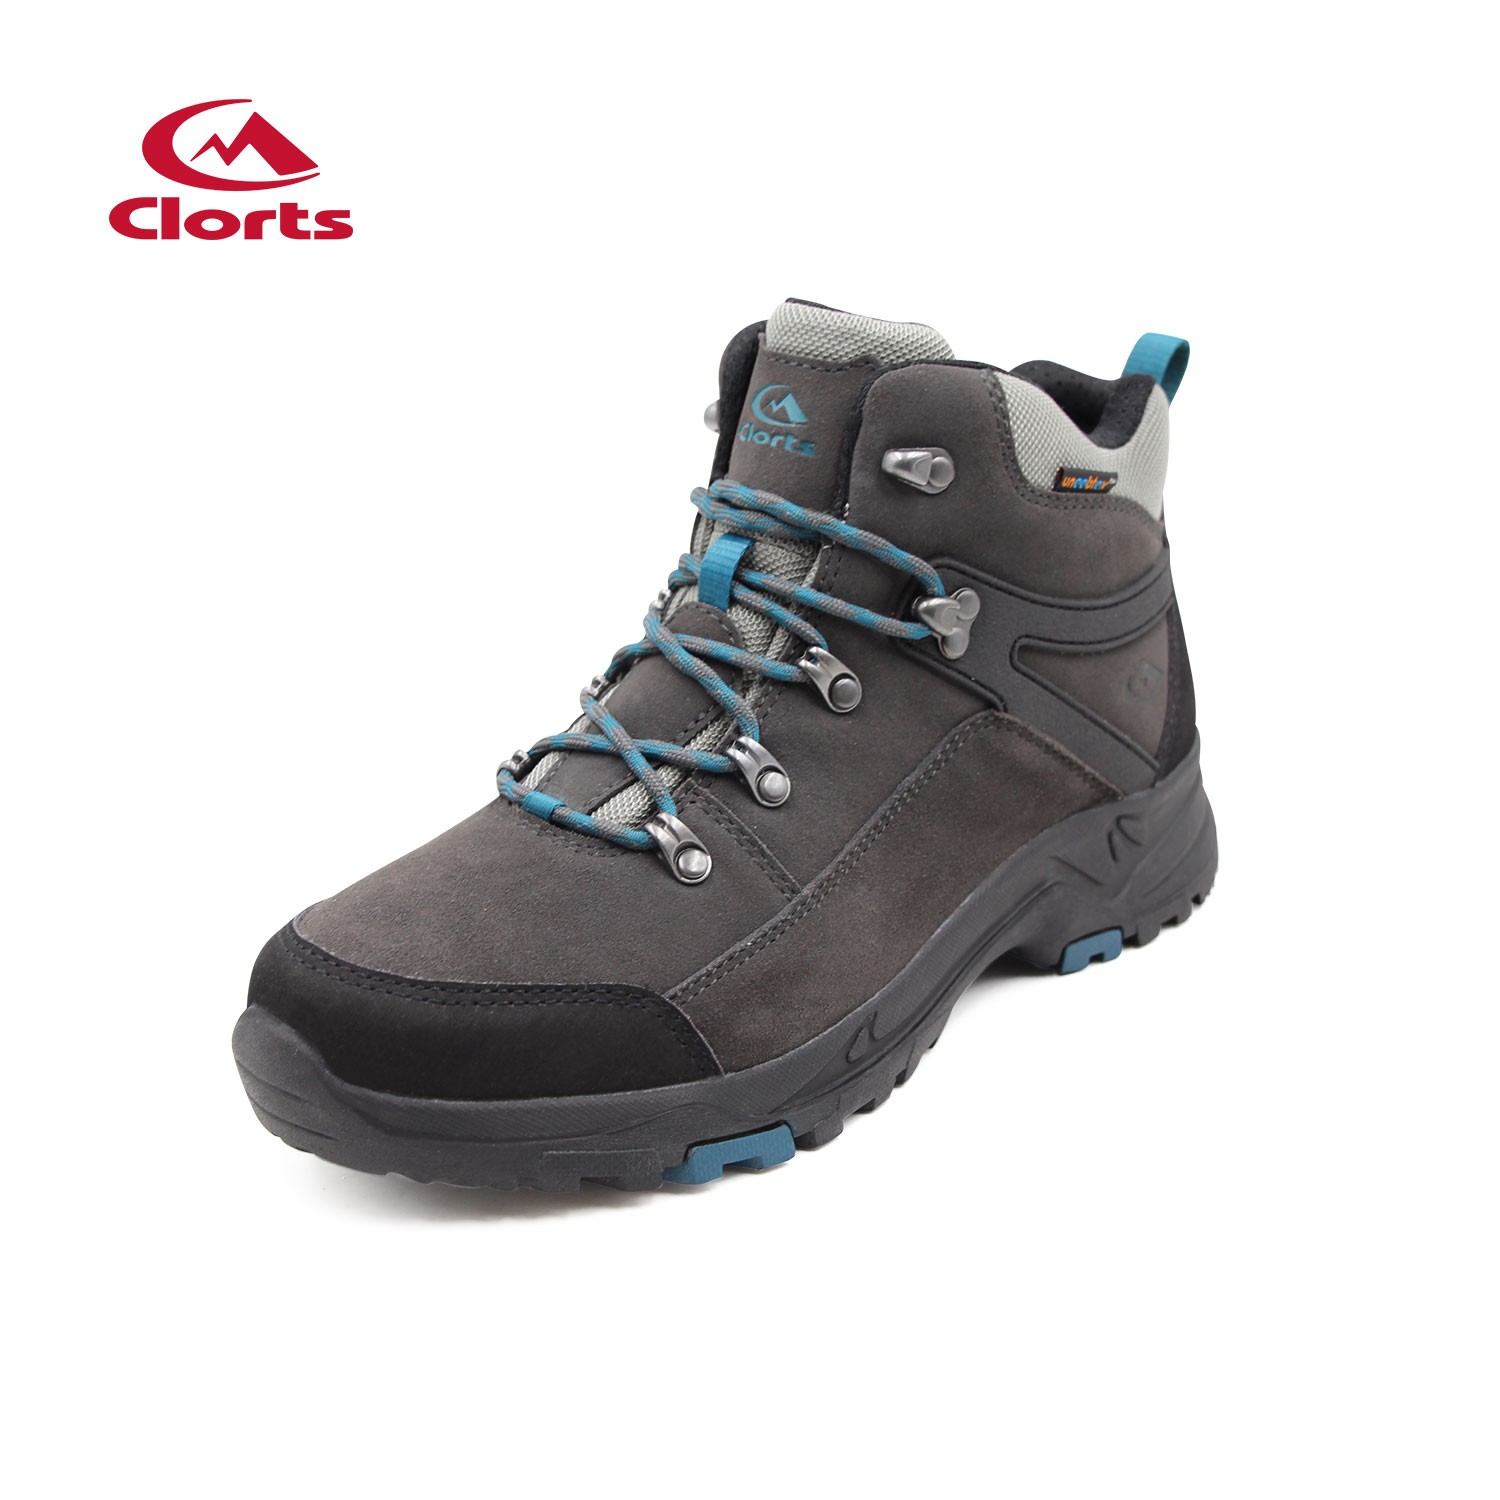 Womens Suede Hiking Boots Manufacturers, Womens Suede Hiking Boots Factory, Supply Womens Suede Hiking Boots